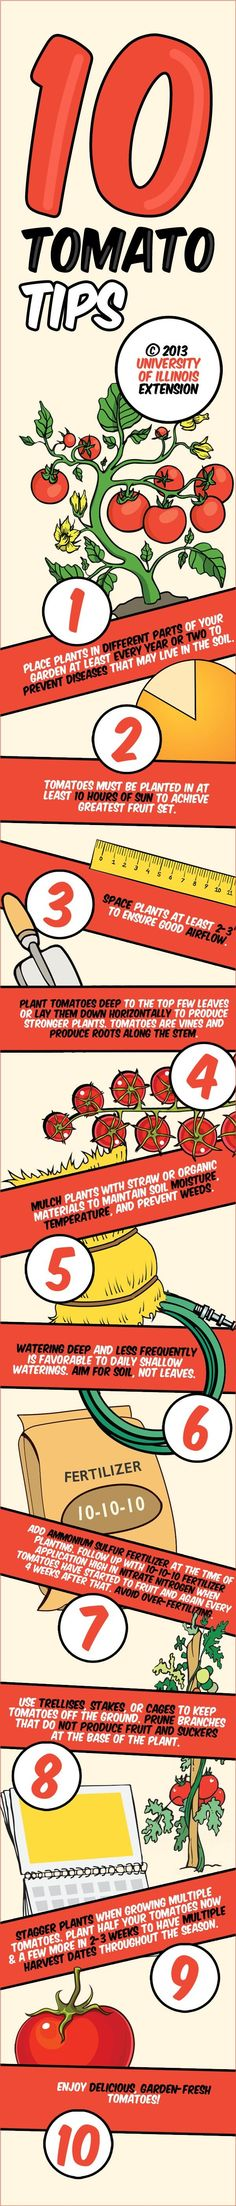 Top 10 Best Tomato Planting Tips: http://homeandgardenamerica.com/top-10-best-tomato-planting-tips